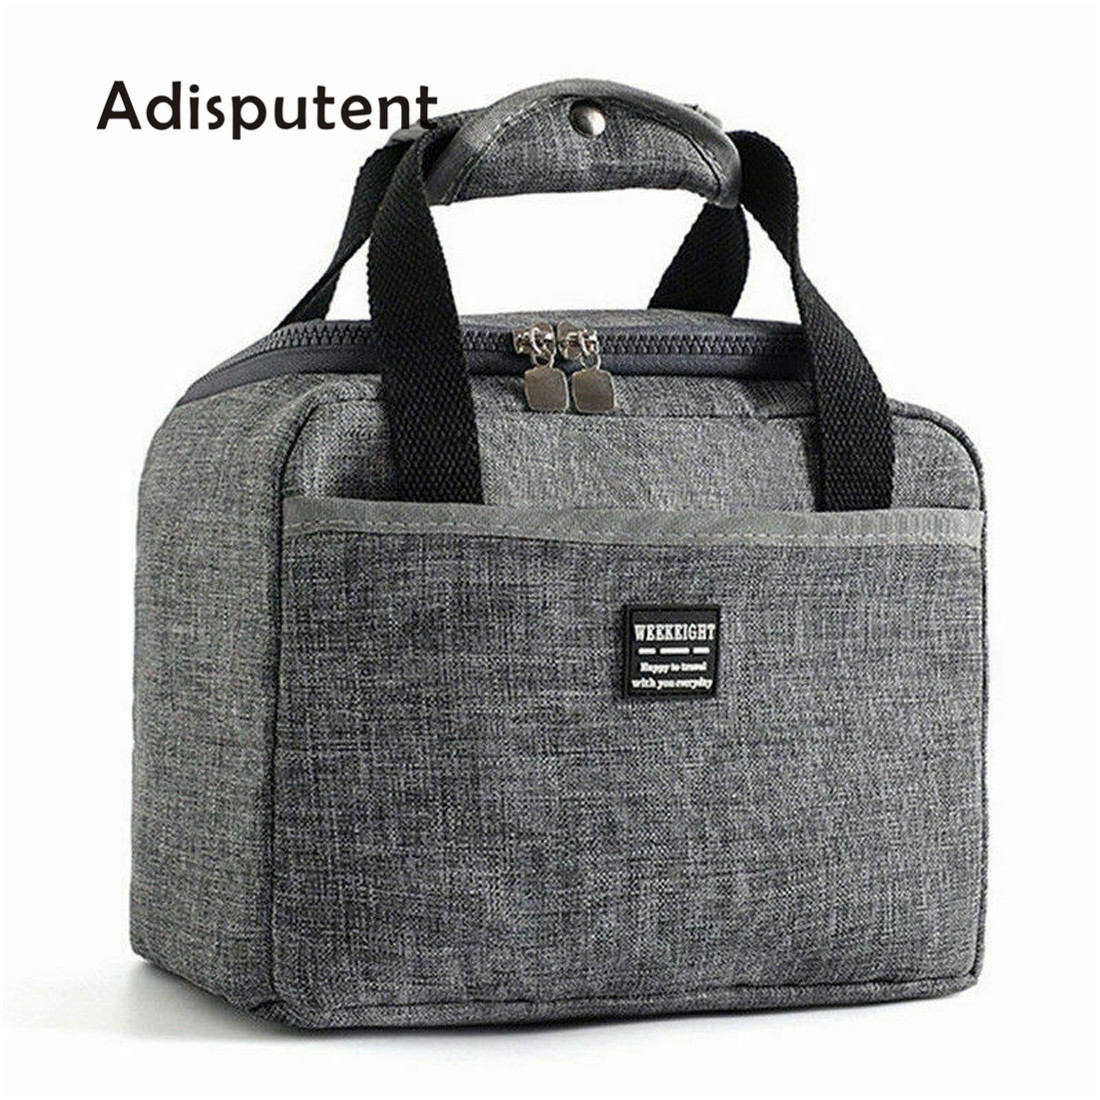 Adisputent Waterproof Insulated Lunch Bags Picnic Pouch Unisex Thermal Dinner Case Food Case Accessories